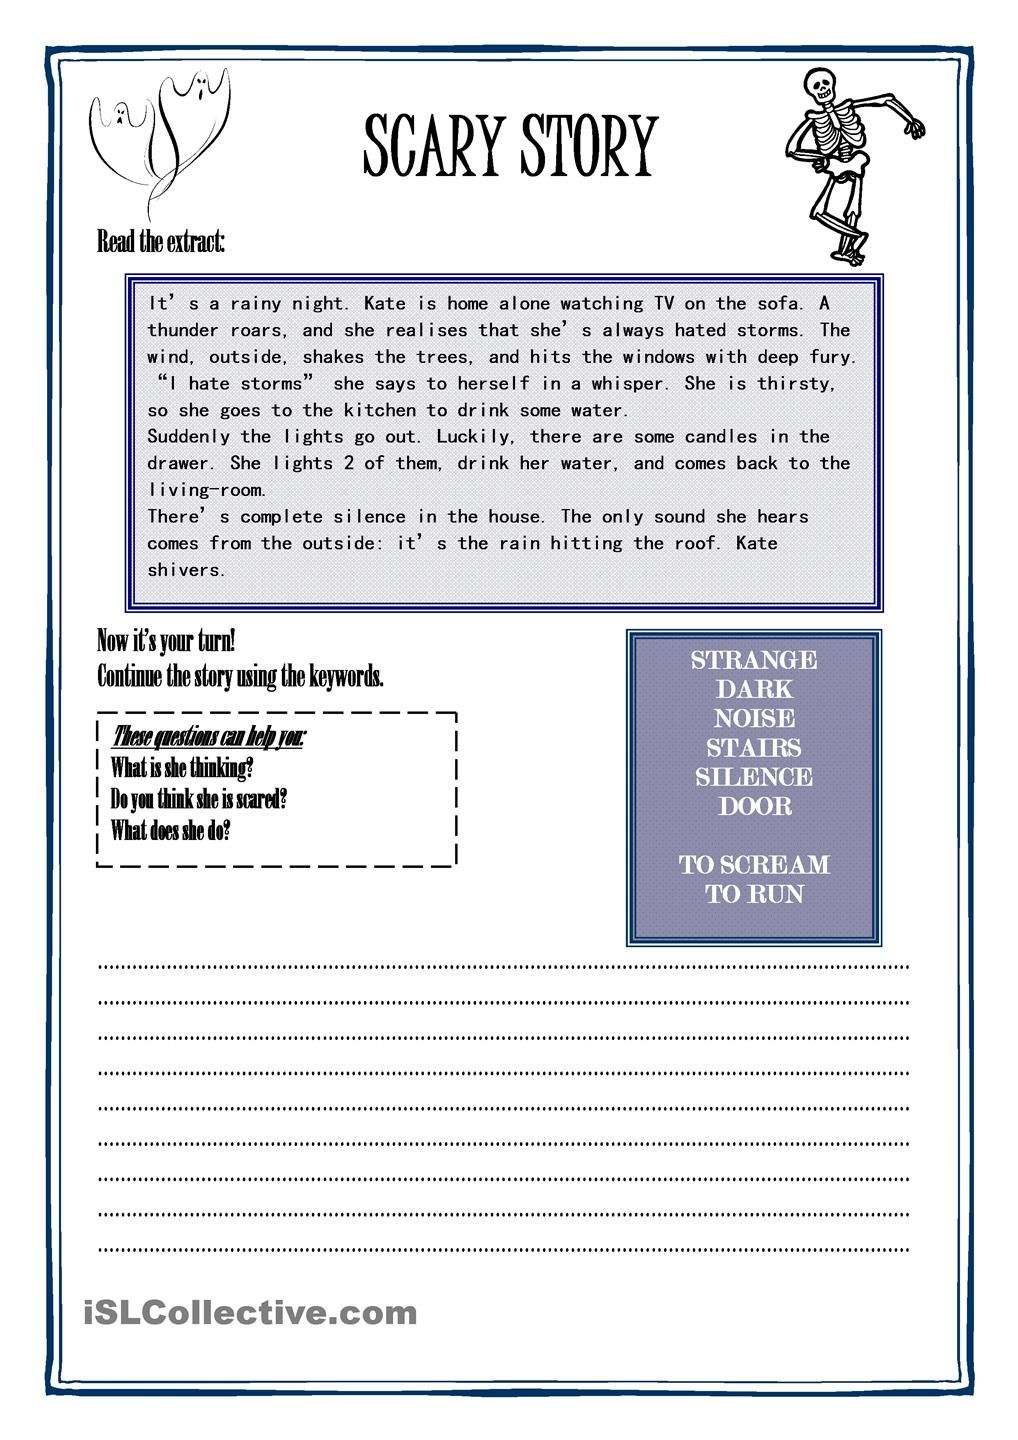 scary story esl caddy scary worksheets and school scary story